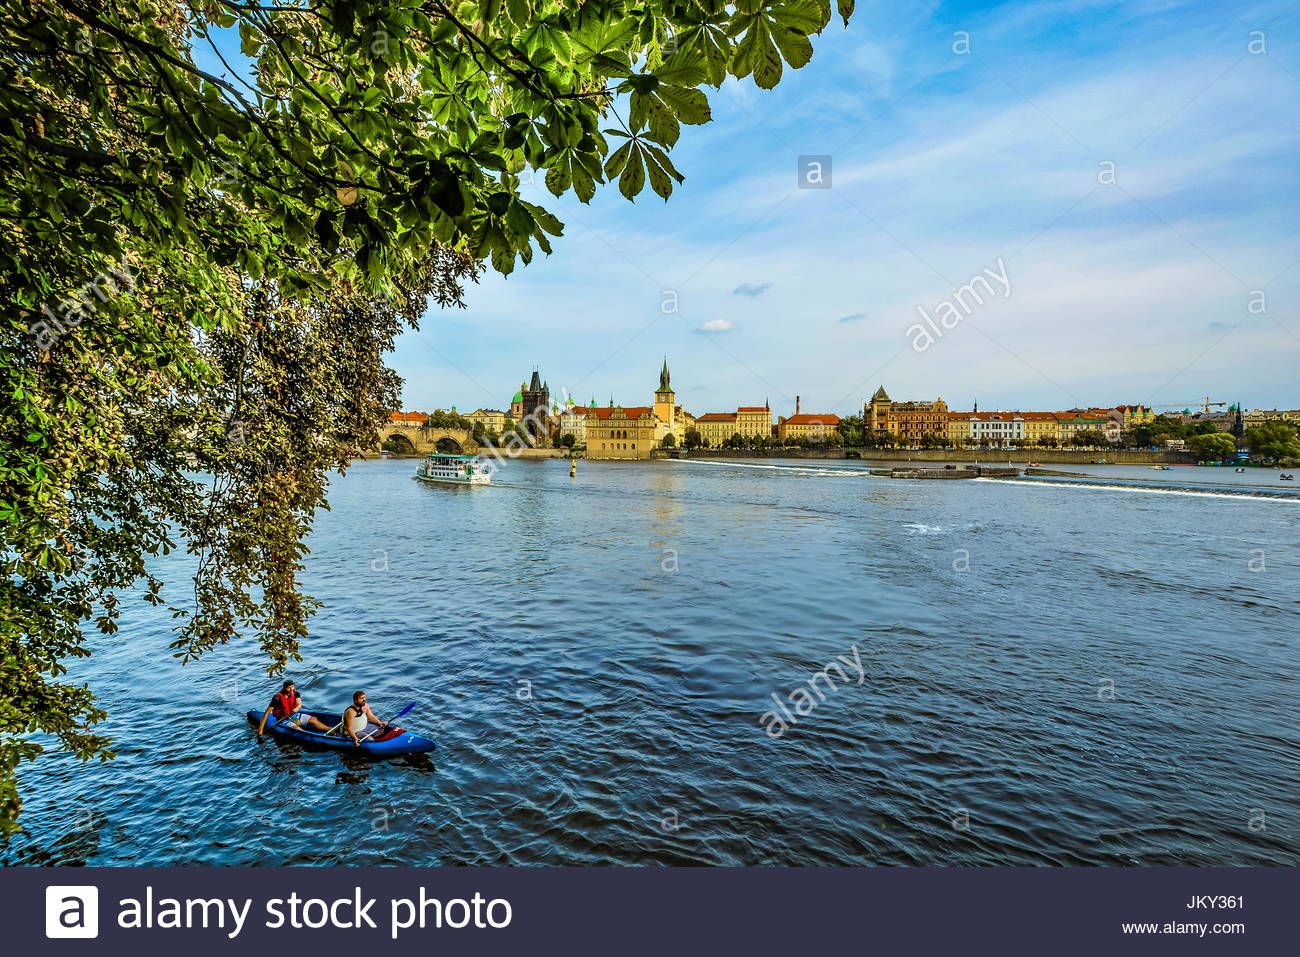 Two men enjoying a ride on the Vltava River in Prague in a blue kayak with the old city in the background on a late - Stock Image